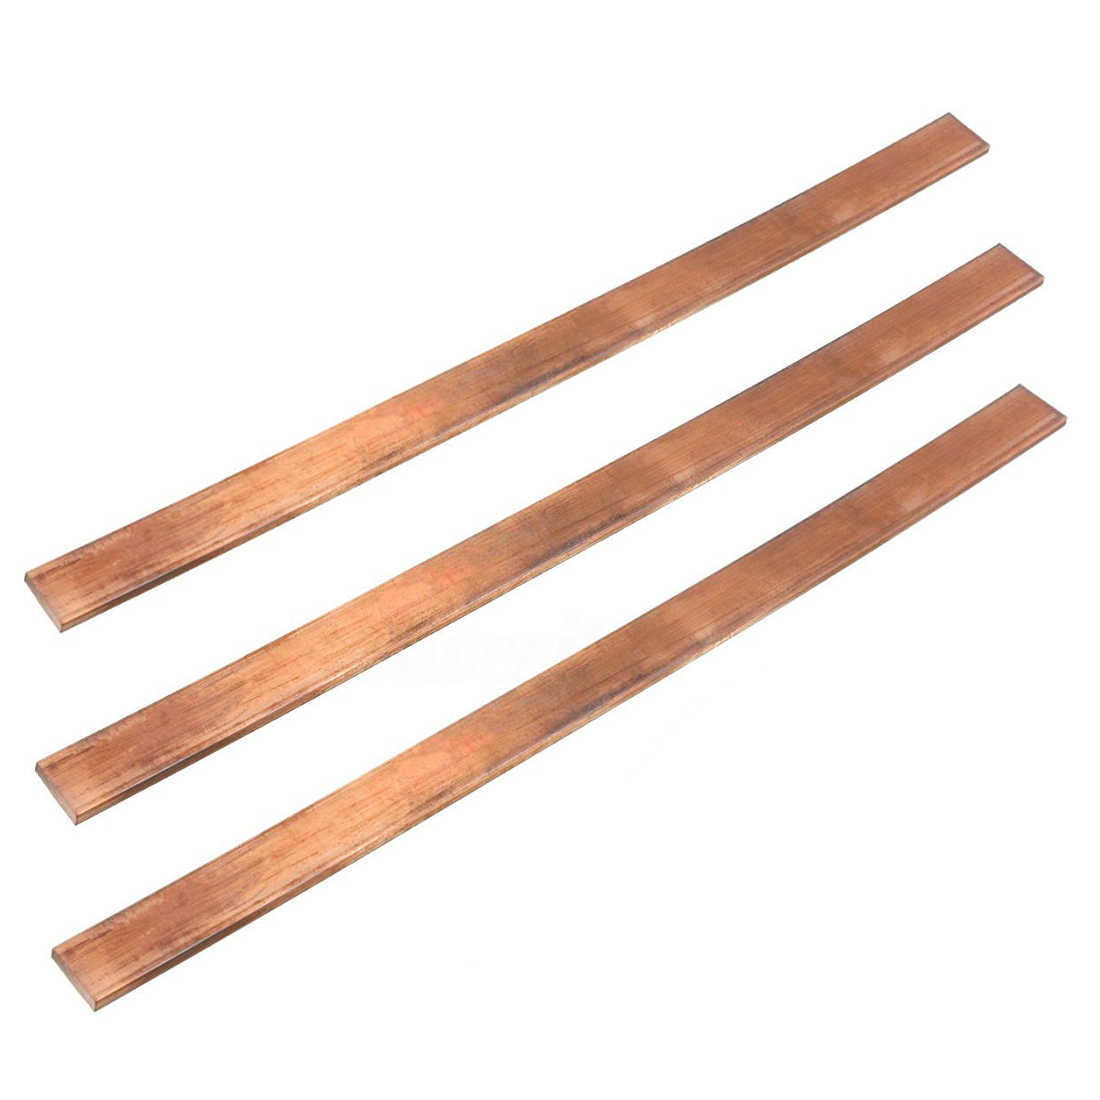 Brand New 99.6% T2 Purple Copper Cu Flat Bar Plate 3mm X 15mm X 250mm Metal Strip